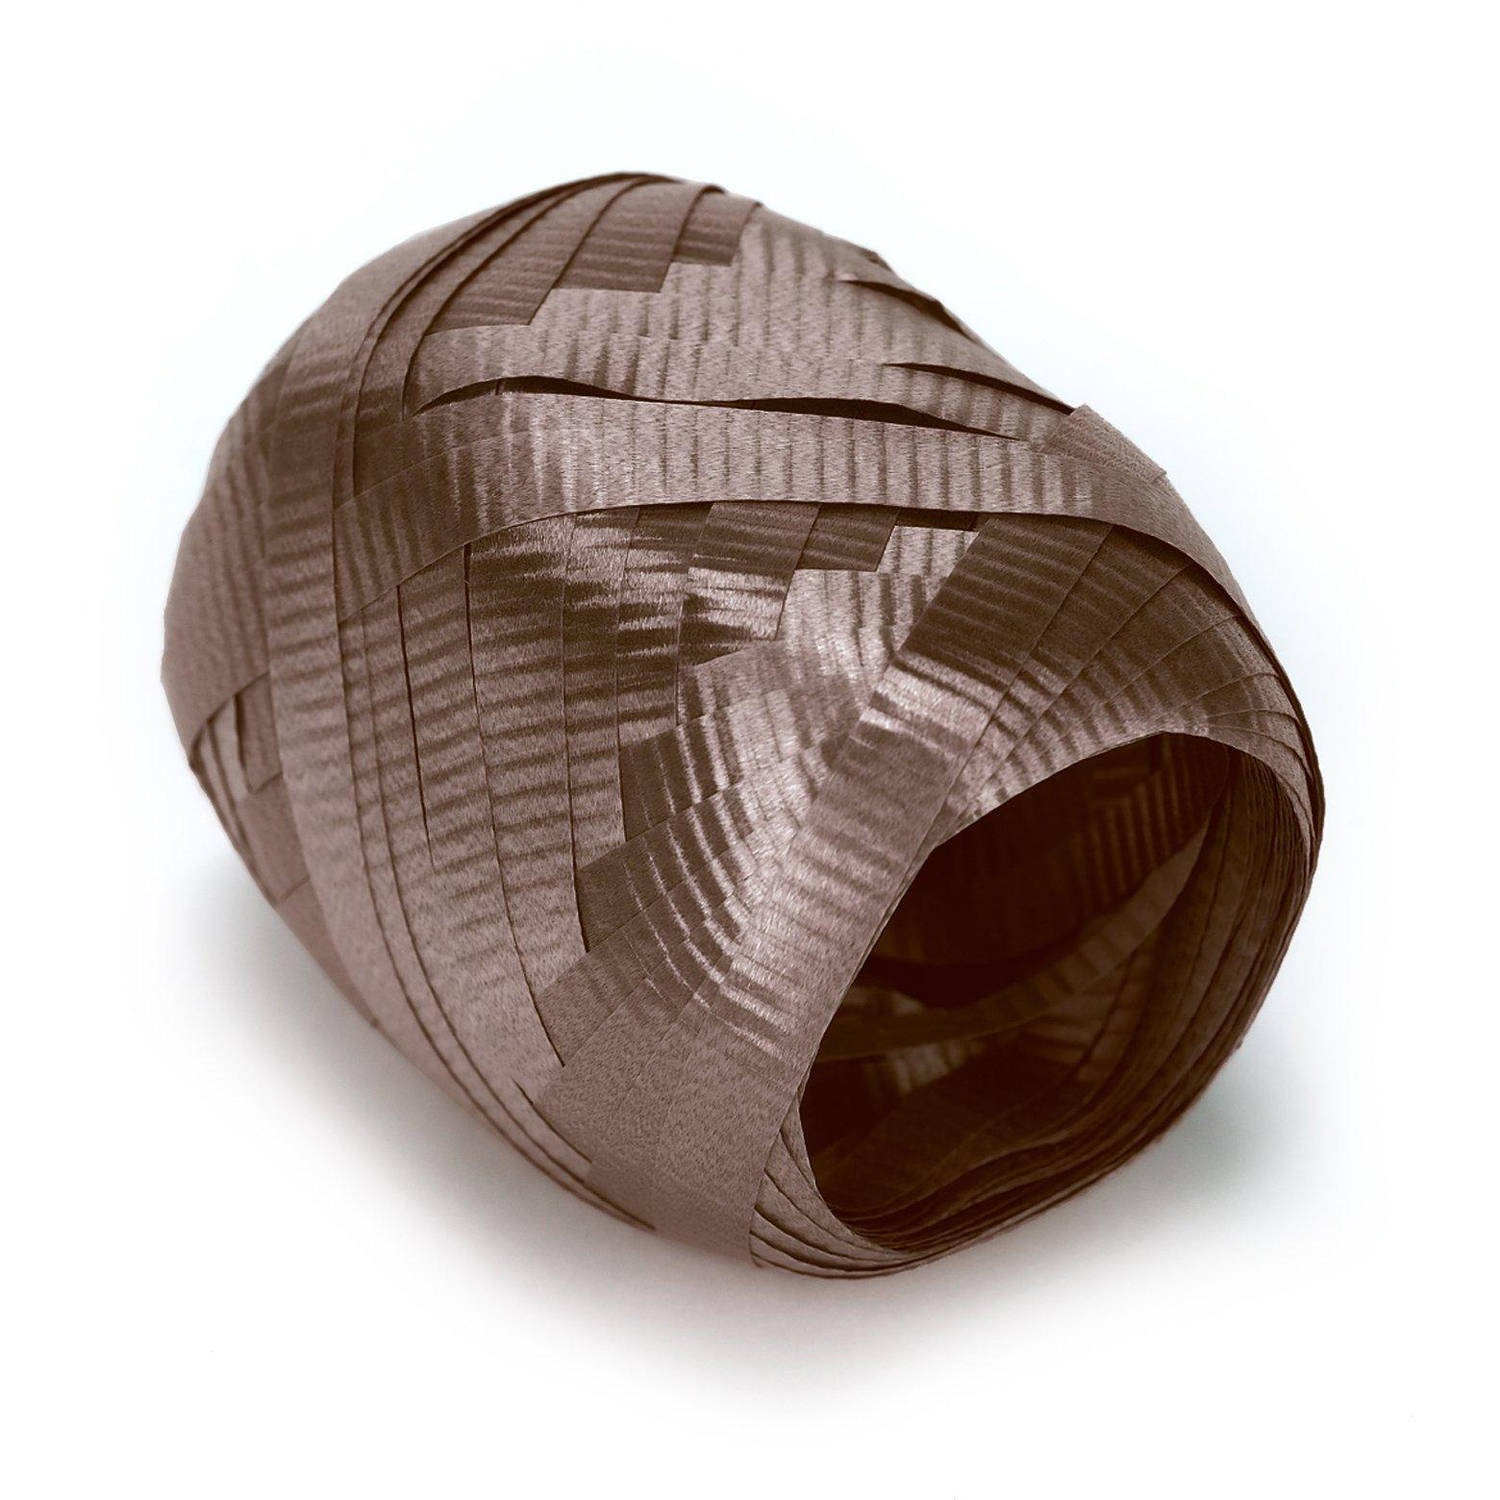 Chocolate (Brown) Curling Ribbon, 1 Roll